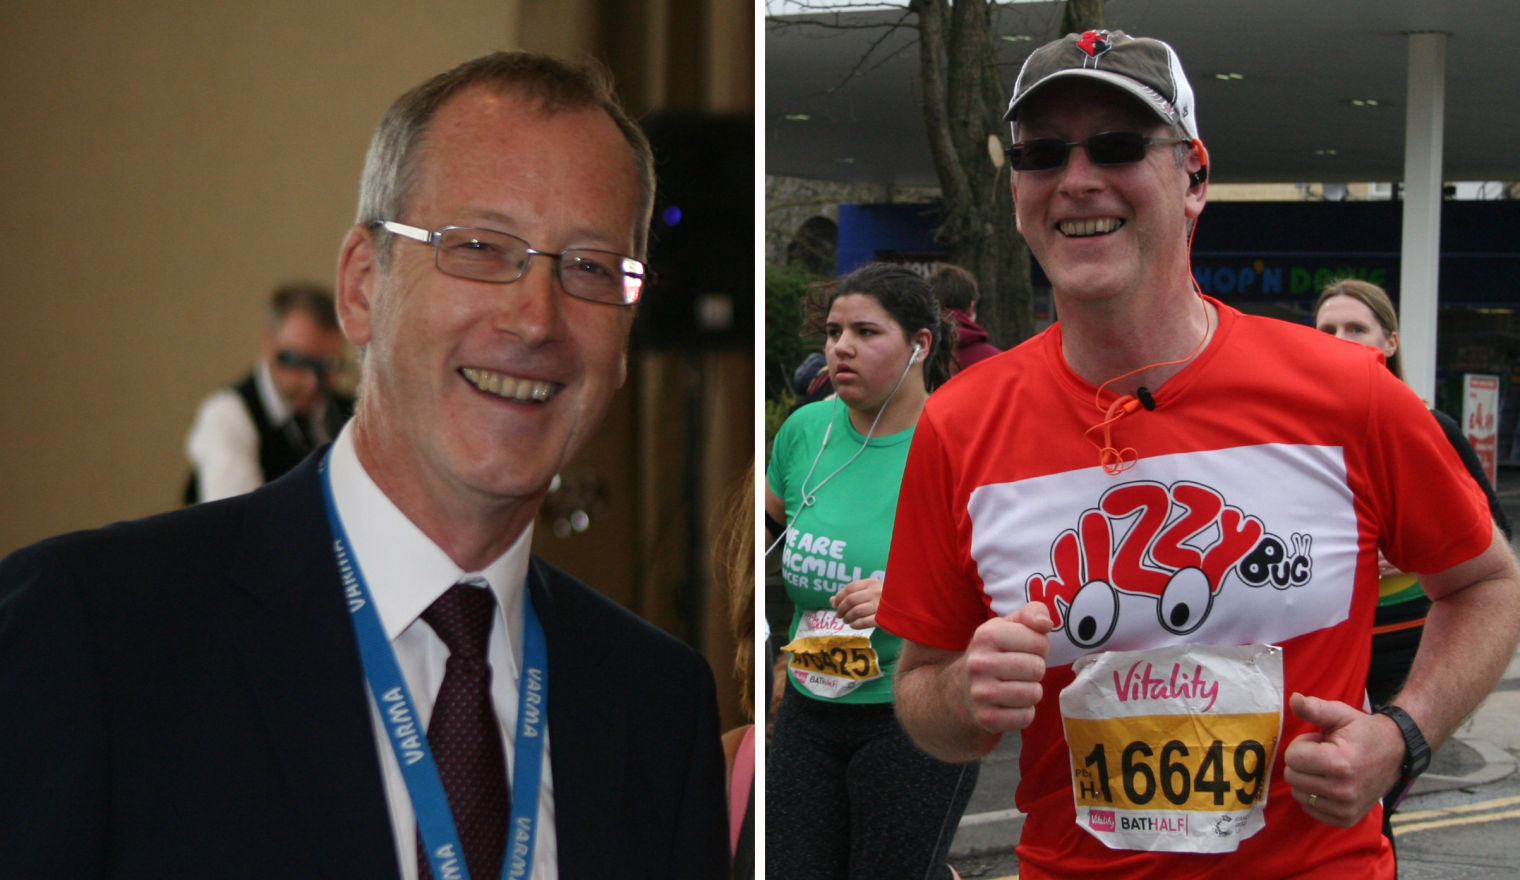 Two pictures of Nigel - one smiling at the camera in a suit and one running in the Bath Half Marathon